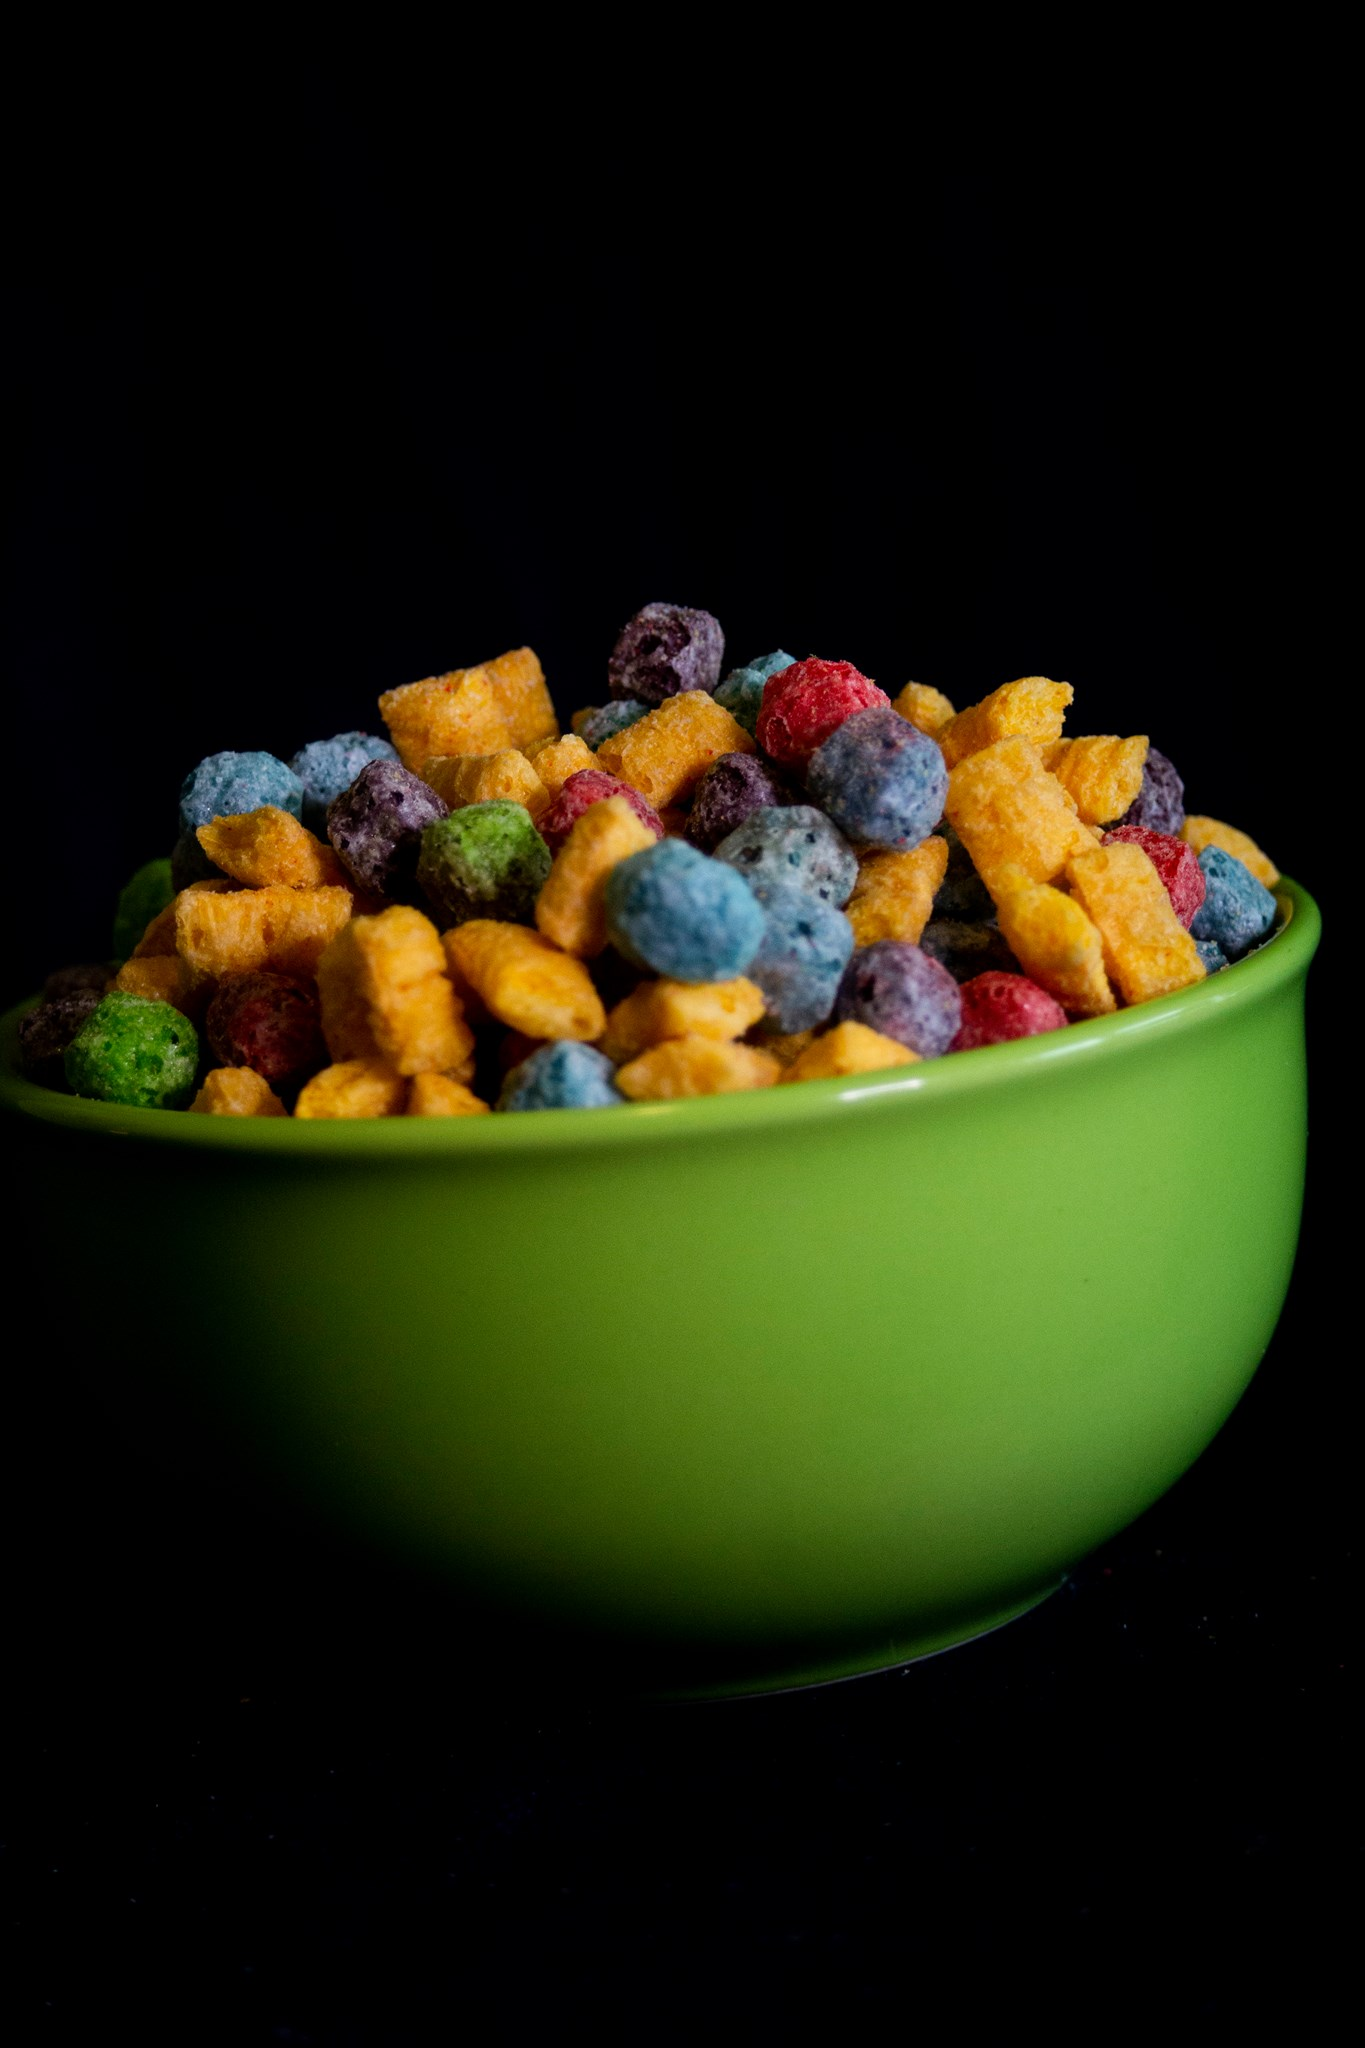 Cap'n Crunch Berries fragrance